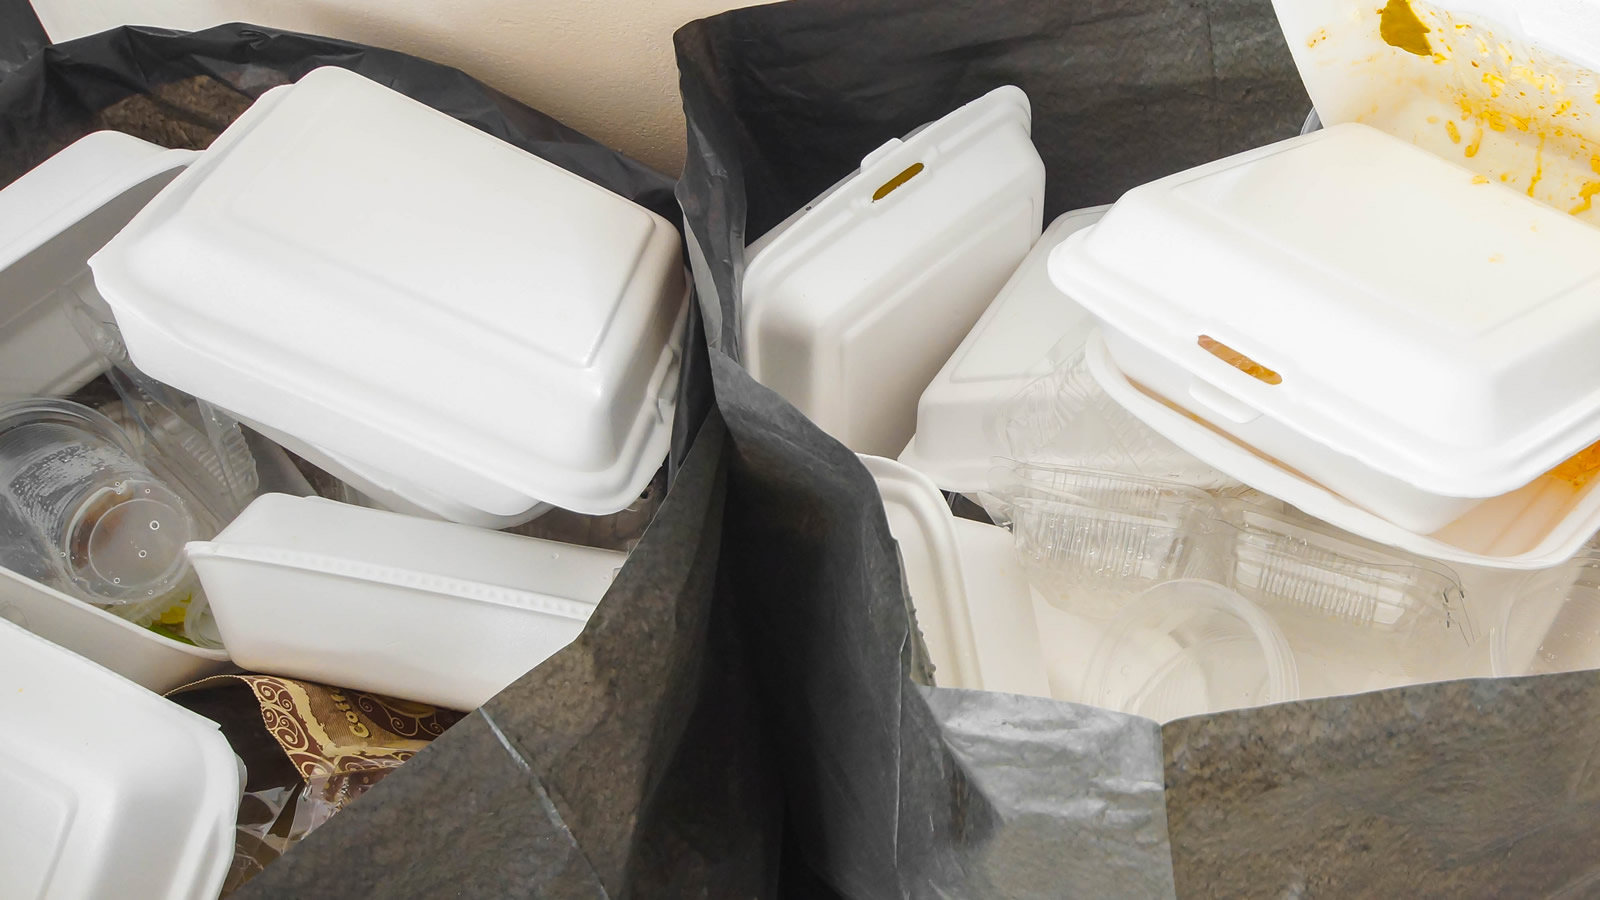 <h4>POLLUTION THAT LASTS FOR HUNDREDS OF YEARS</h4><h5>Polystyrene foam breaks apart easily, but it persists in the environment in tiny particles—and every bit of it ever made is still out there and could continue to threaten wildlife for hundreds of years to come.</h5><em>wk1003mike / Shutterstock</em>